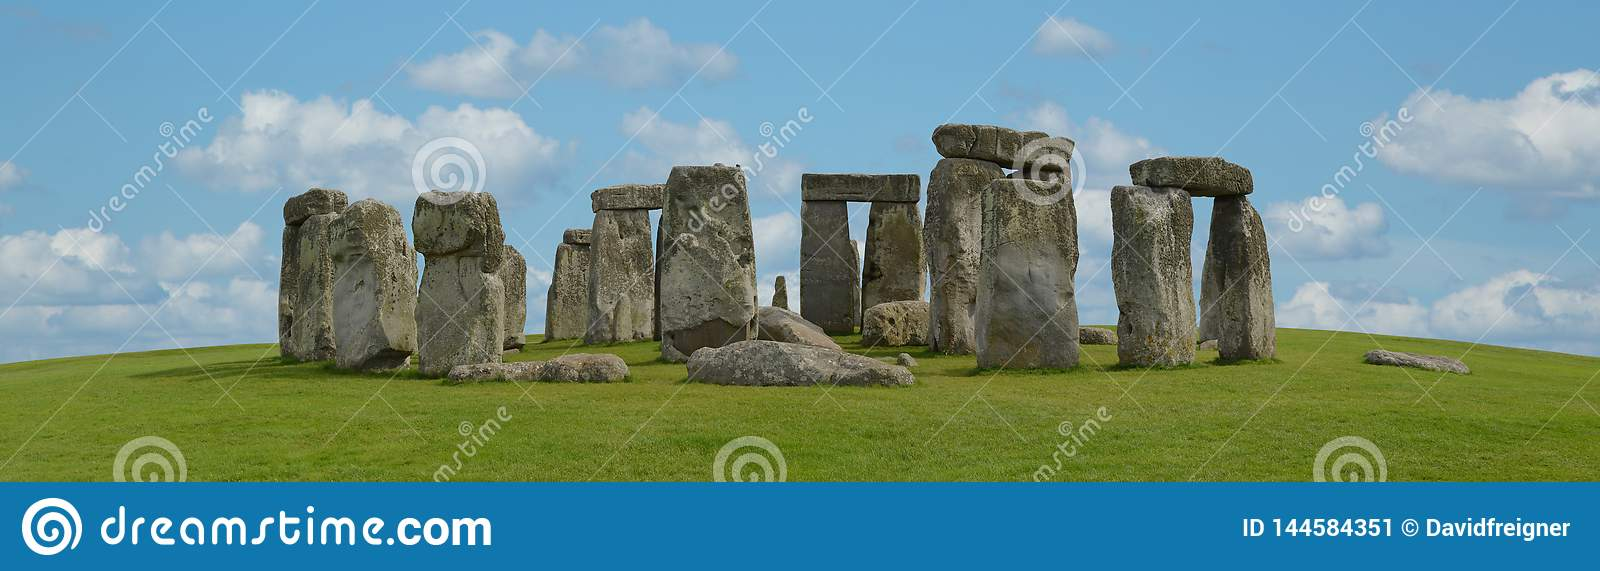 Mystic Stonehenge in England, Europe. Concept for travel, astronomy,religion,esoteric and touristic themes